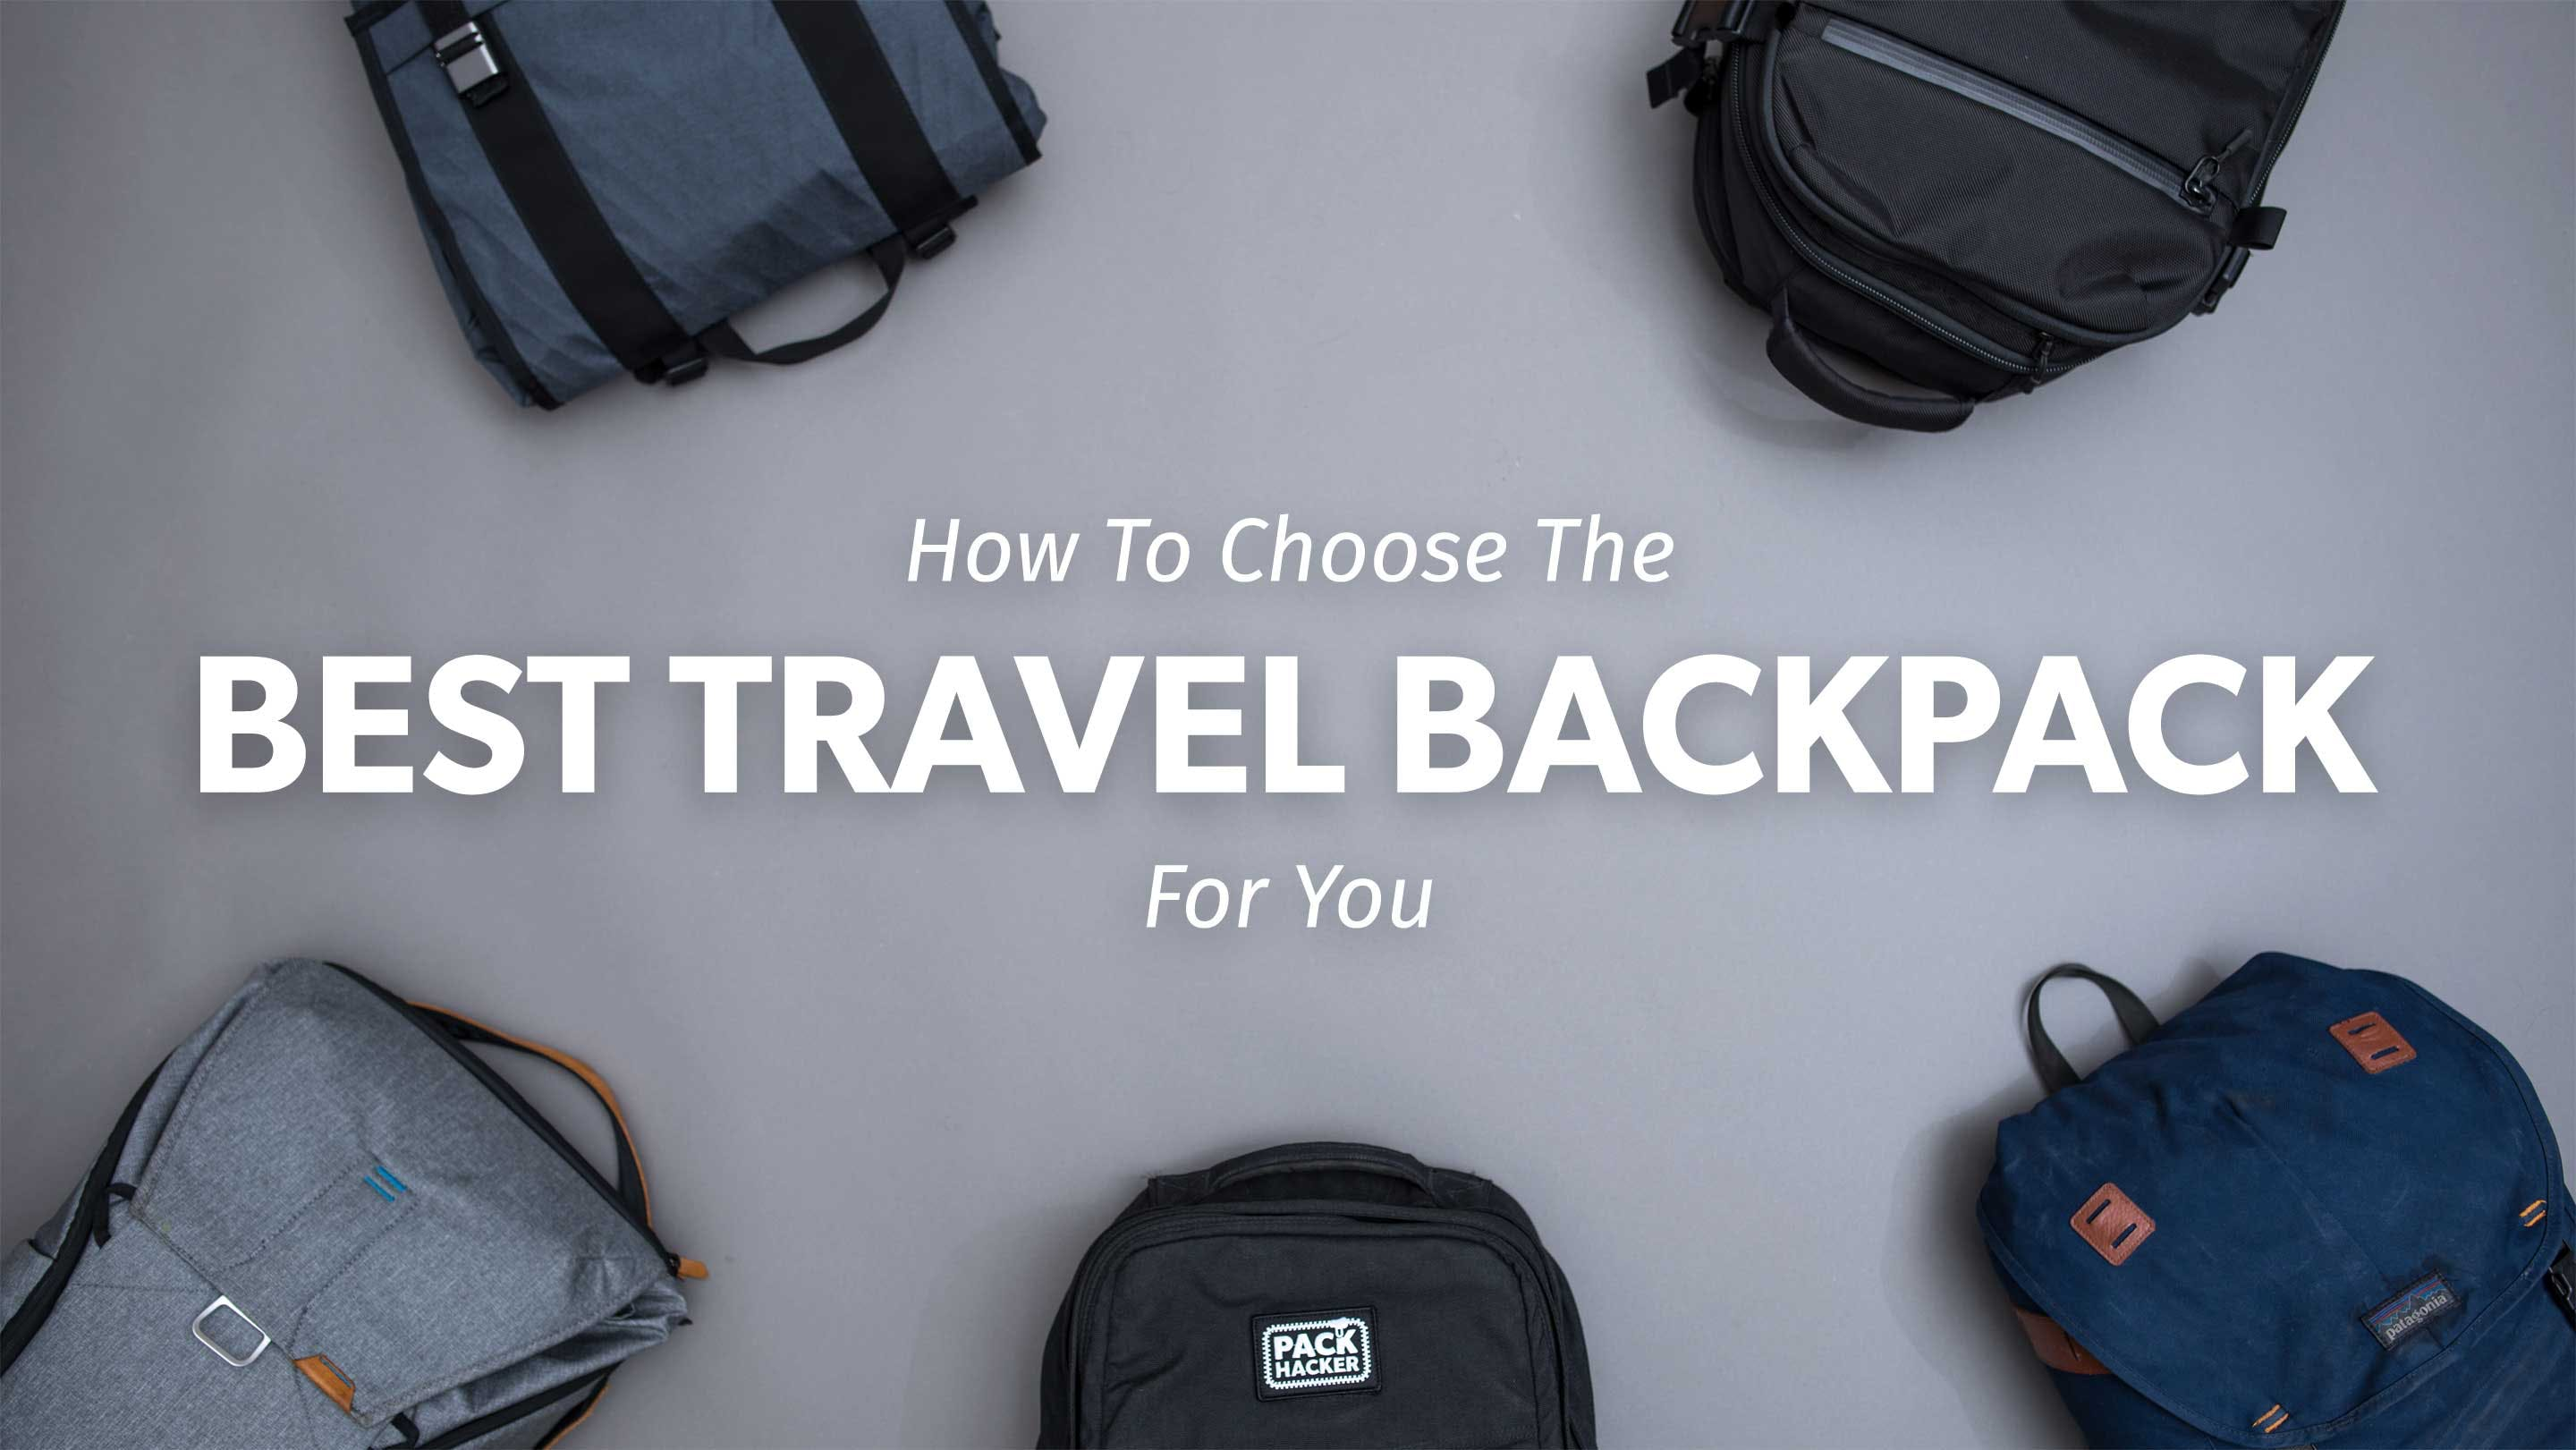 553280f204b0 Best Travel Backpack  How To Pick In 2019